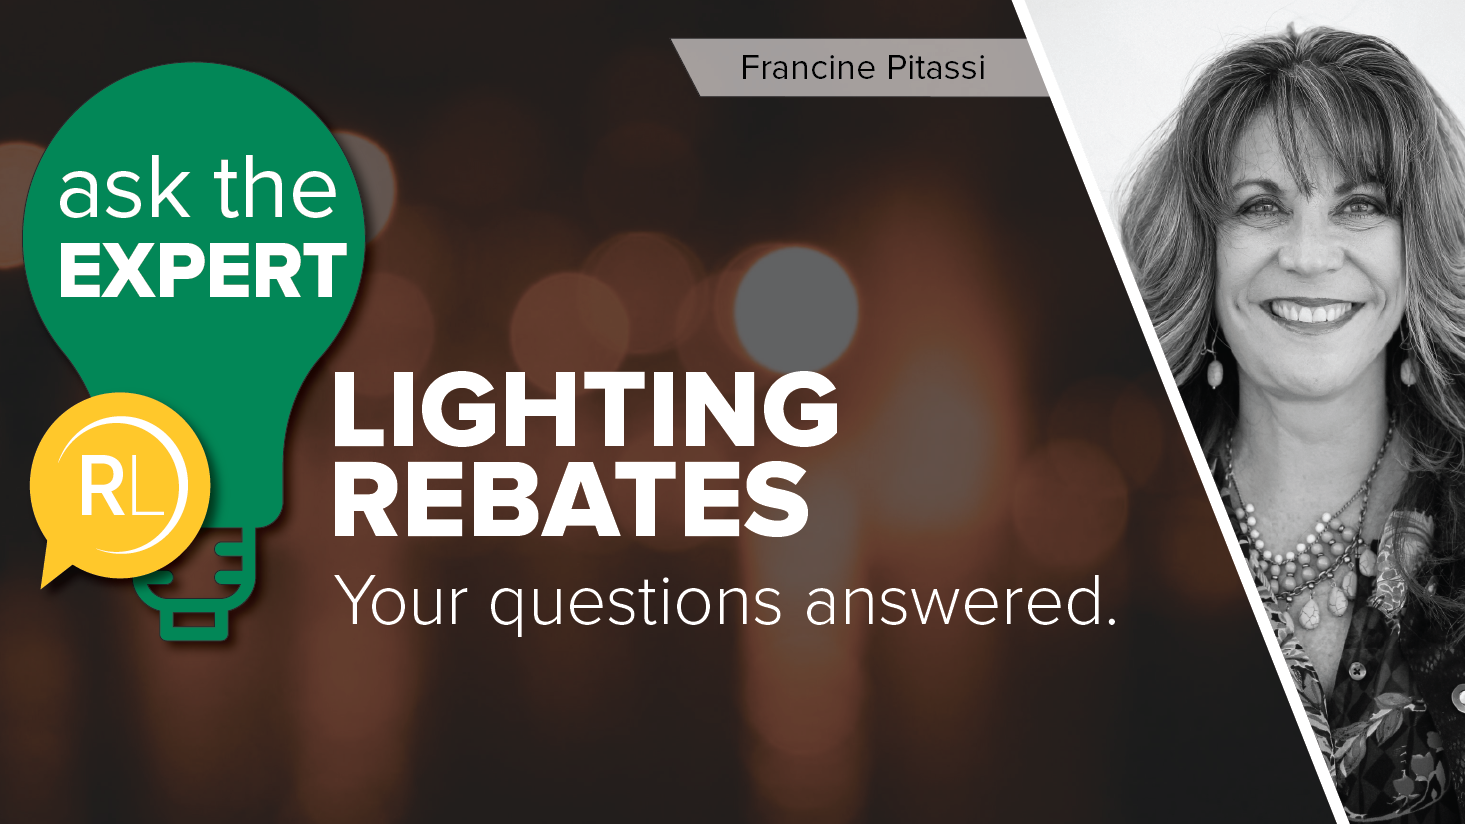 Ask-the-Expert-Series-LightingRebates-BlogHeader-FrancinePitassi